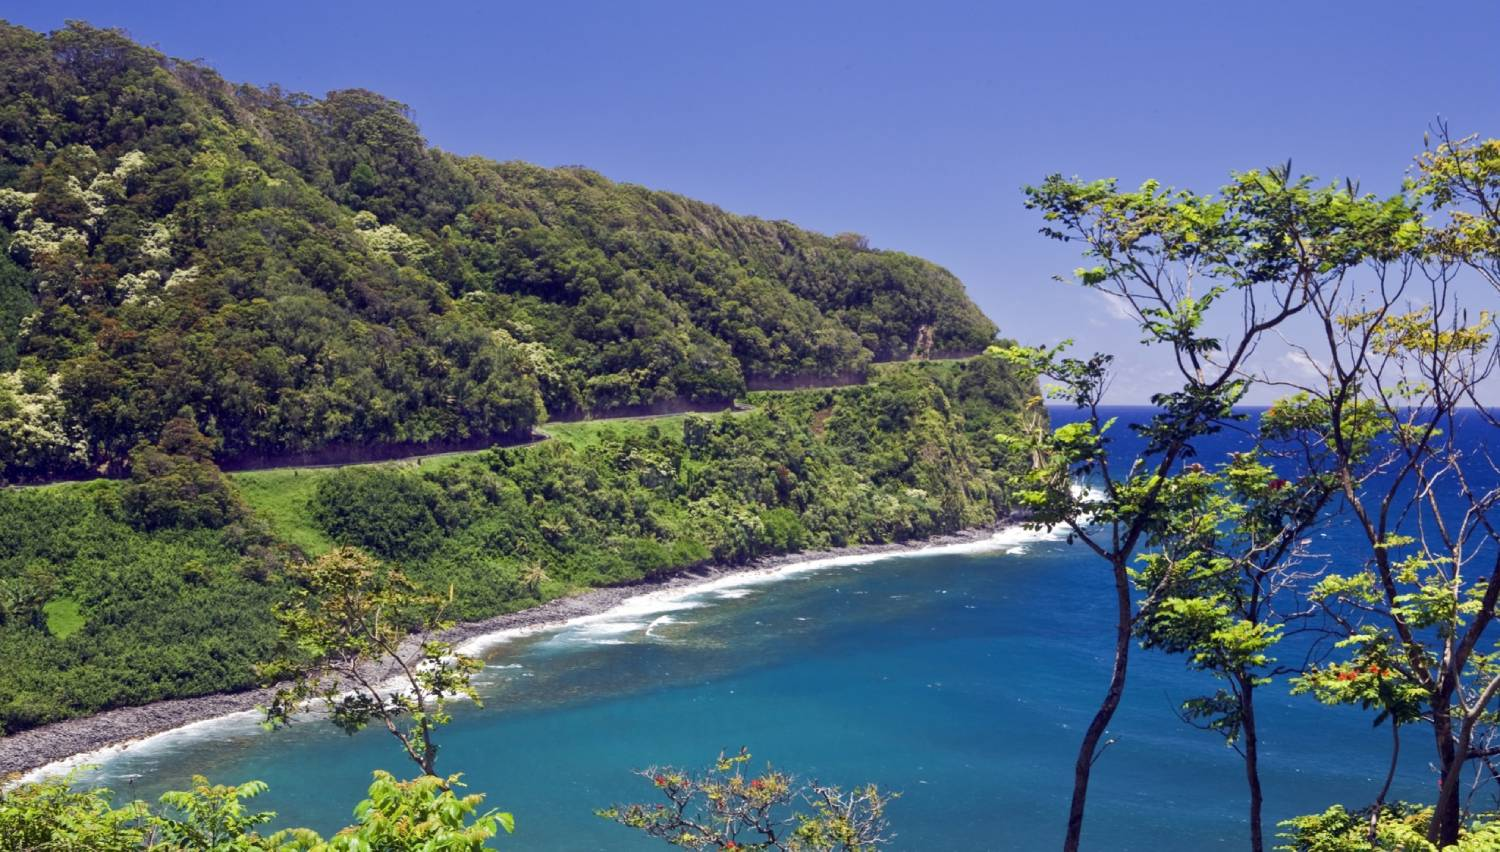 Road to Hana - Things To Do In Hawaii